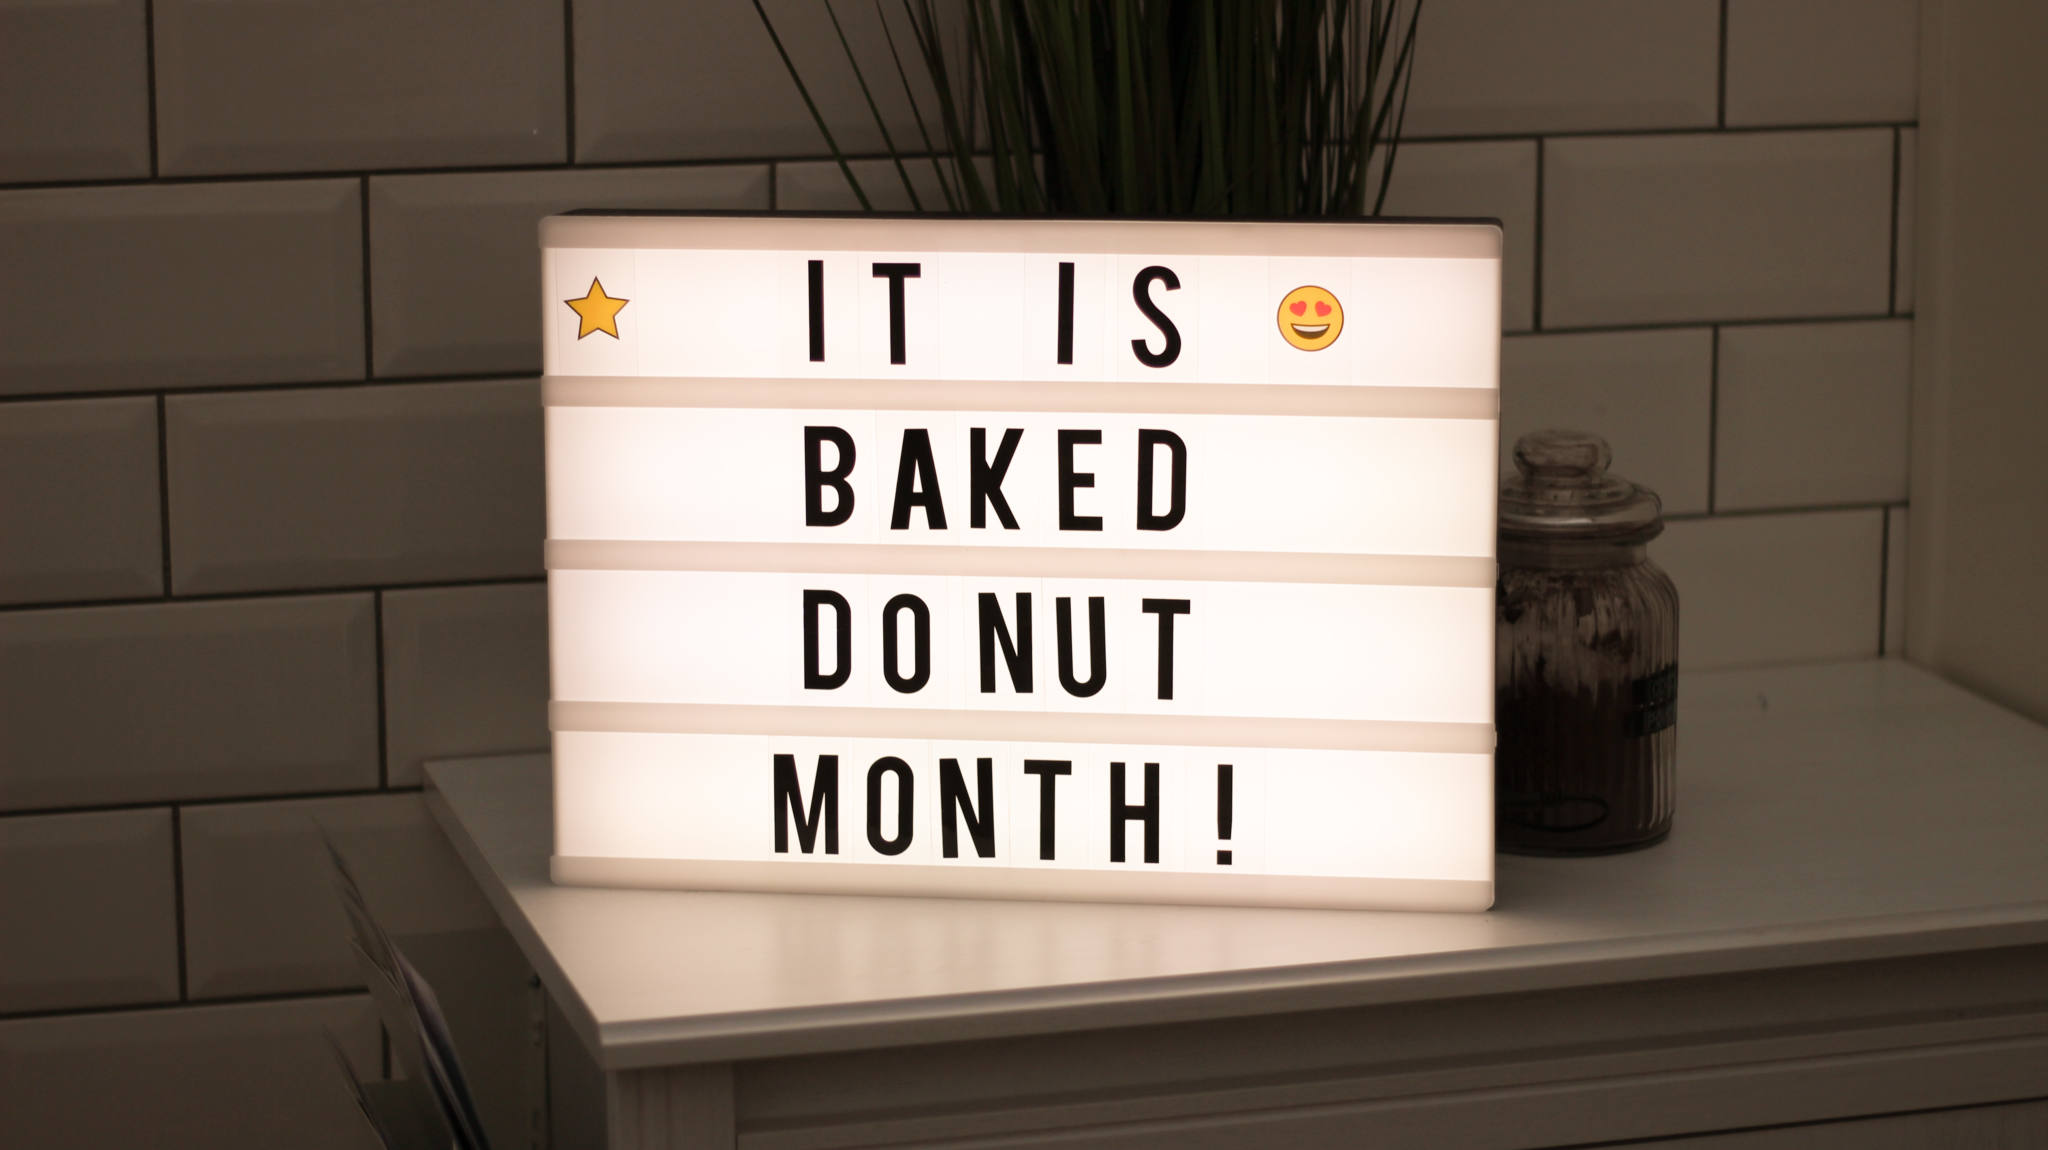 Lightbox saying 'It is baked donut month'